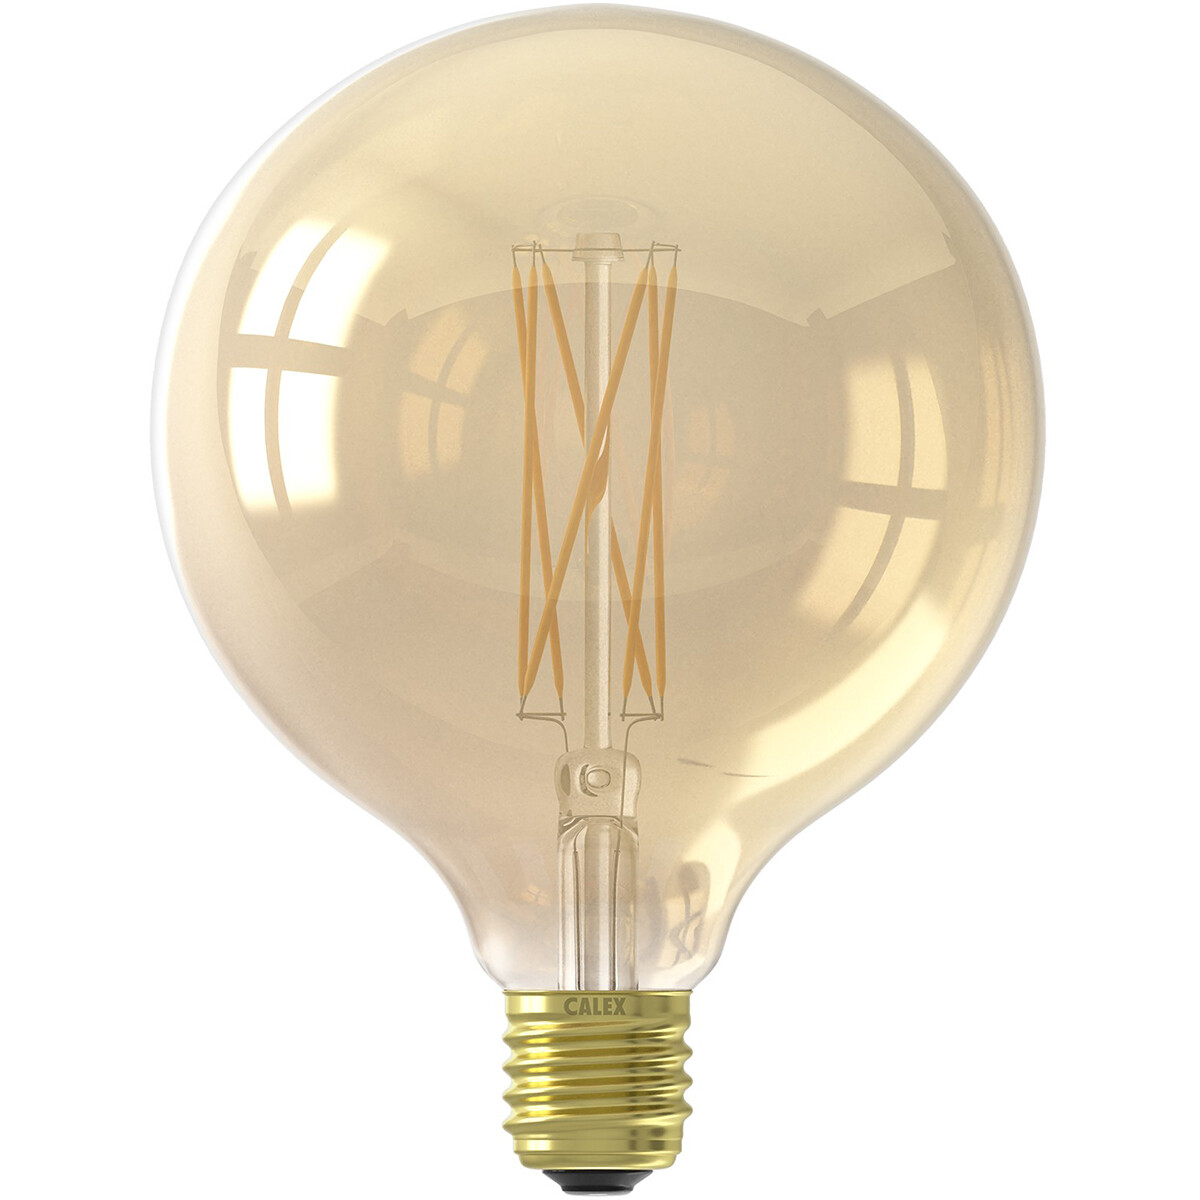 Globelamp LED filament goud 4W (vervangt 40W) grote fitting E27 125mm